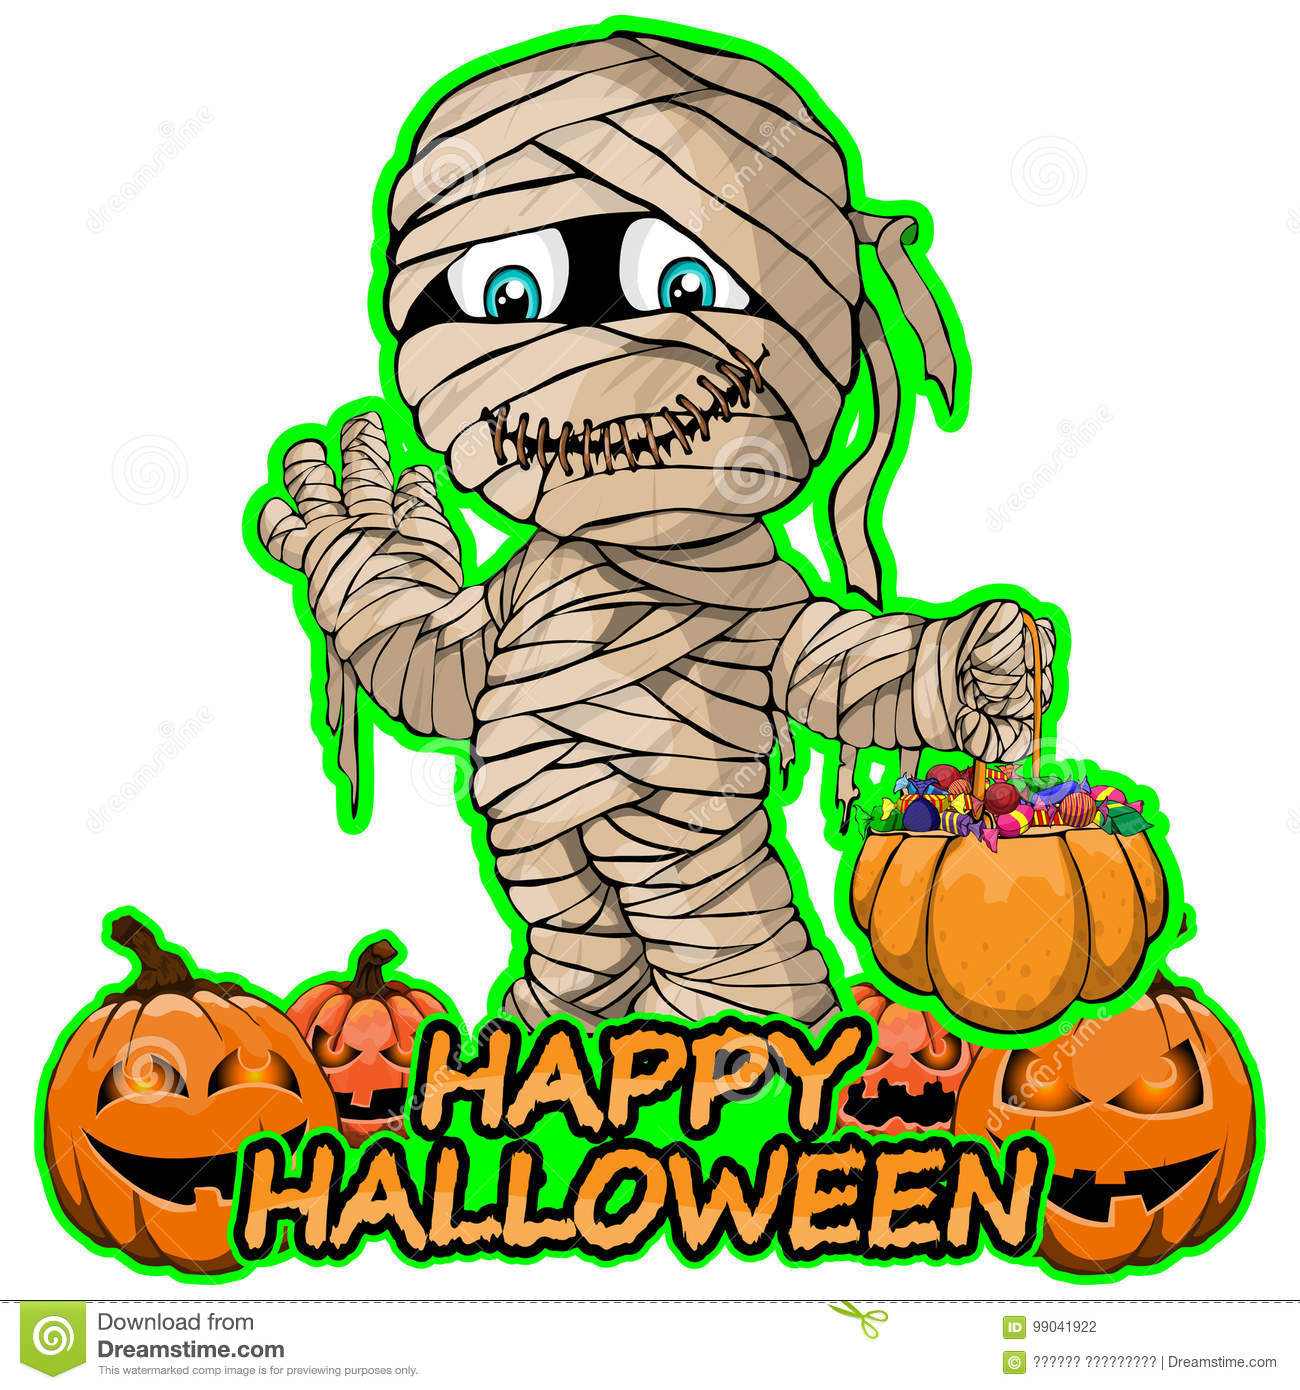 Merry Mummy Wishes Happy Halloween On Isolated White Background. Royalty  Free Vector